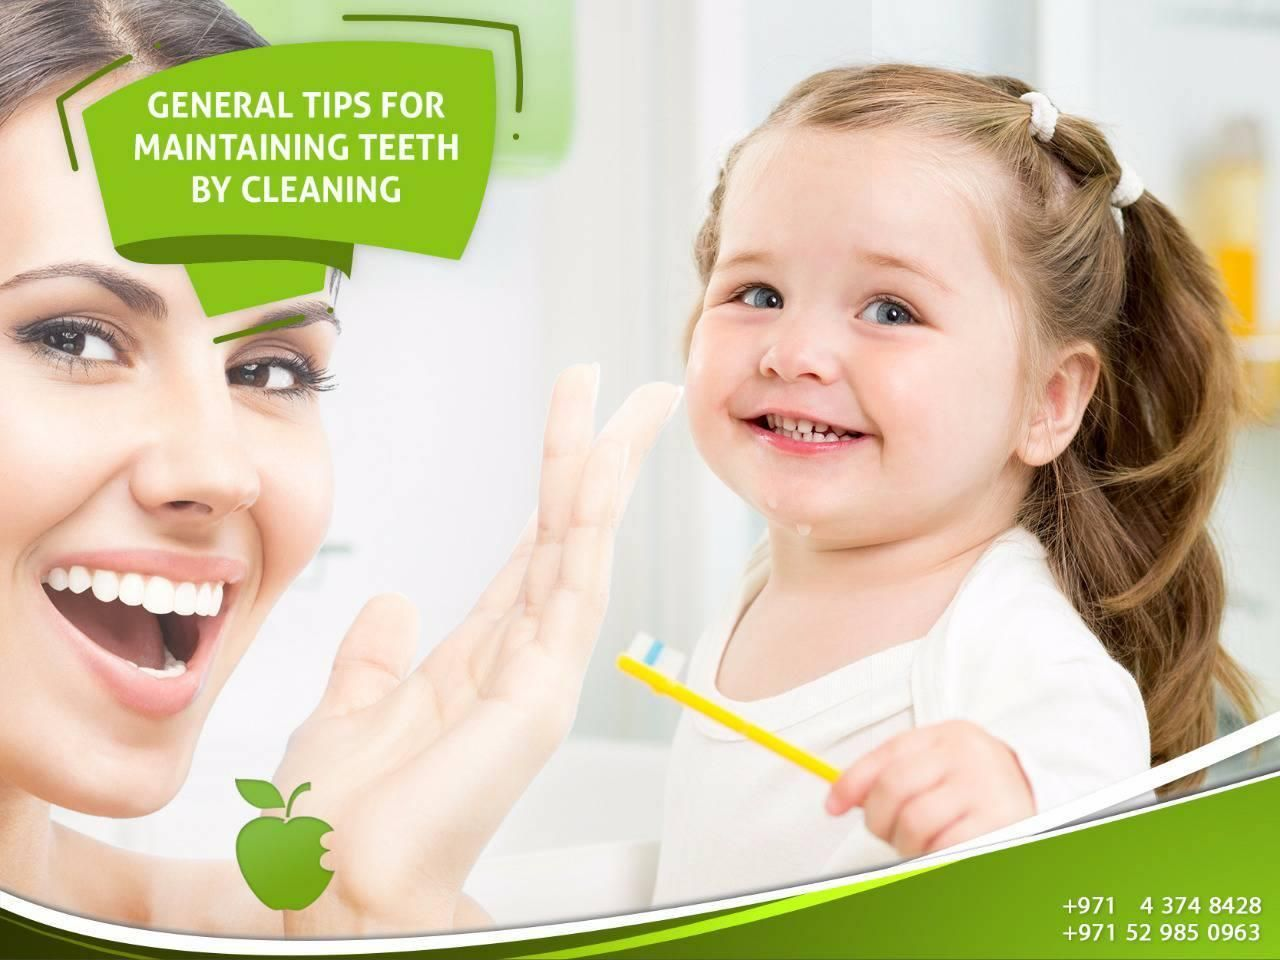 Using A Custom Brush Daily And After Each Meal Use The Thread To Clean The Food Residue Between The Teeth That The Brush Ca Strengthen Teeth Dental Clinic